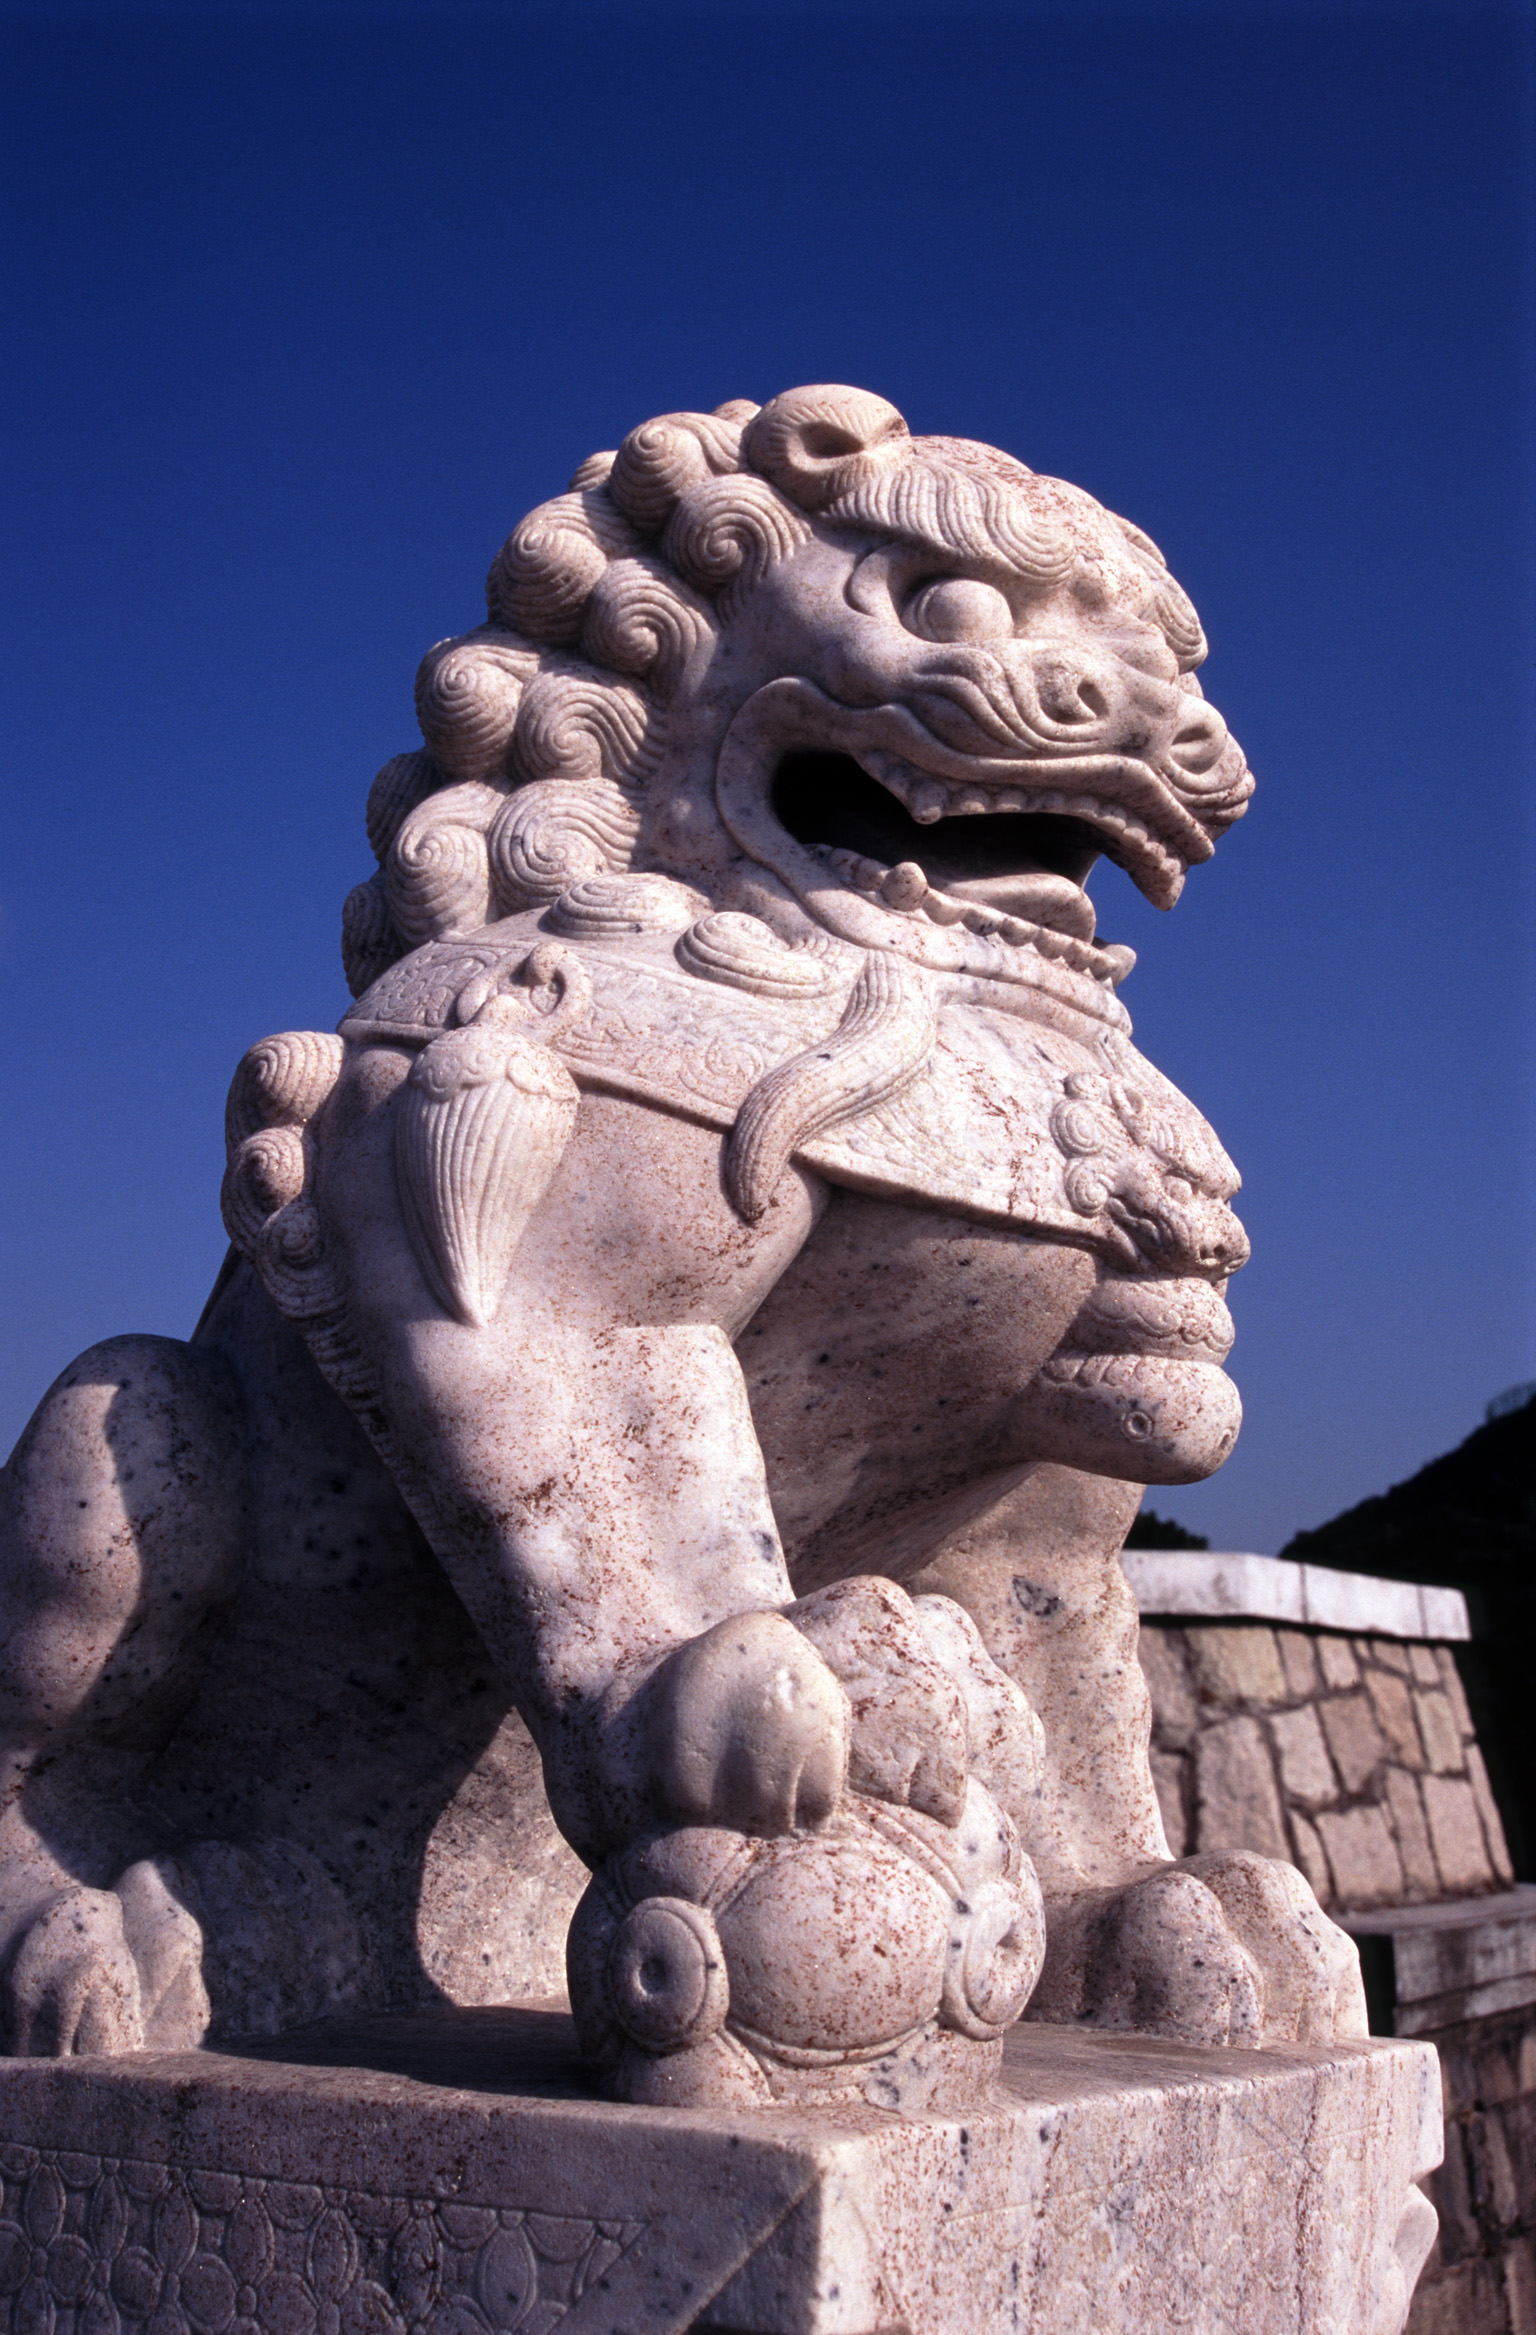 Close up Lucky Chinese Stone Lion Sculpture on Blue Sky Background.